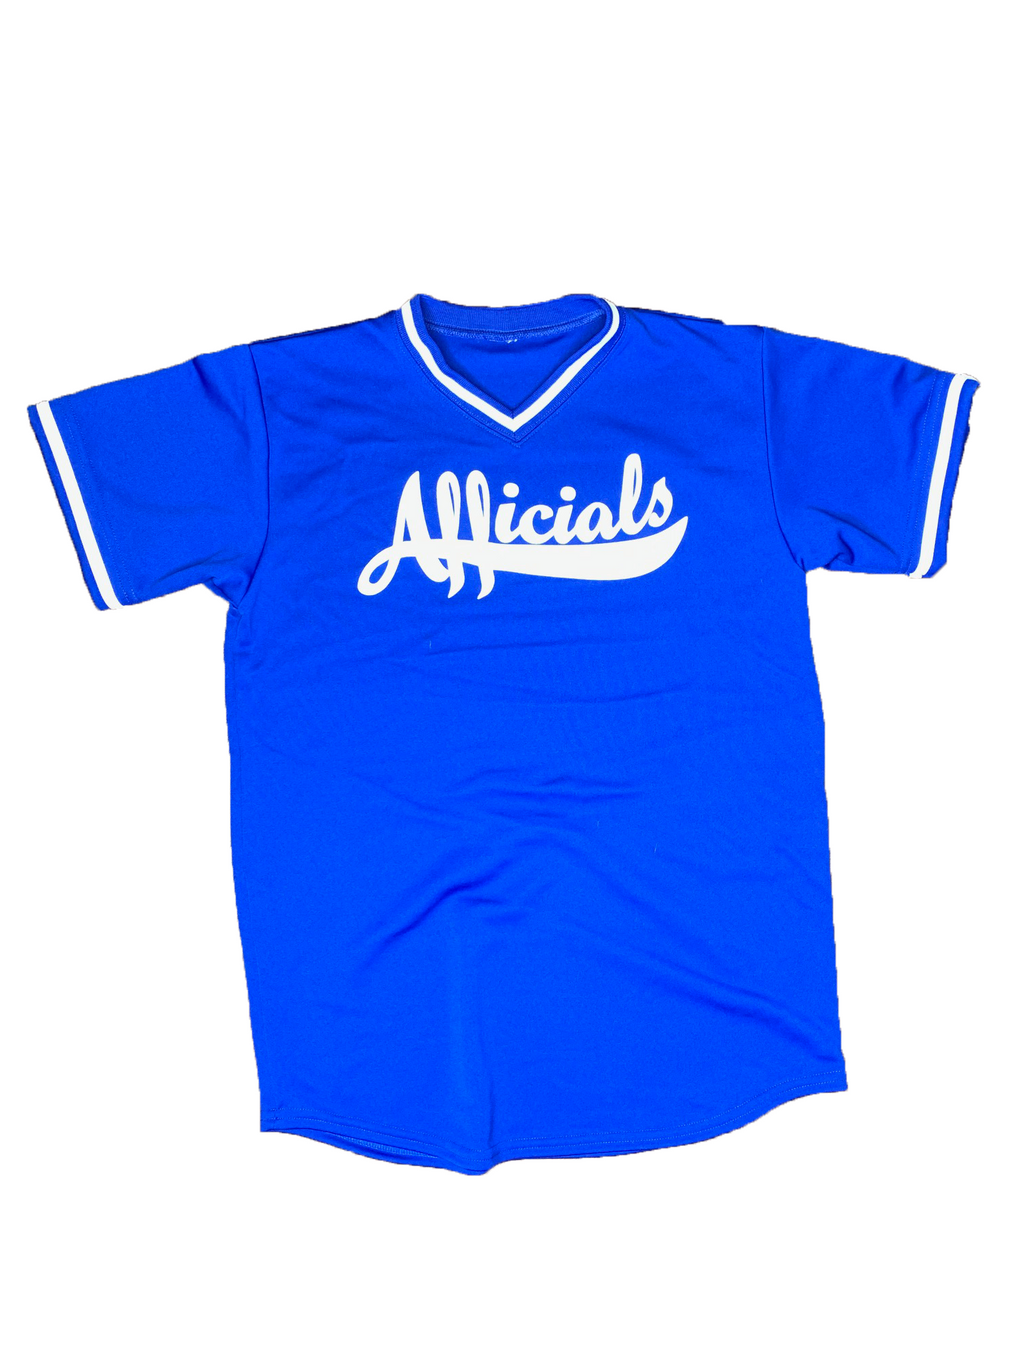 Afficials Signature Jersey ROYAL BLUE/WHITE